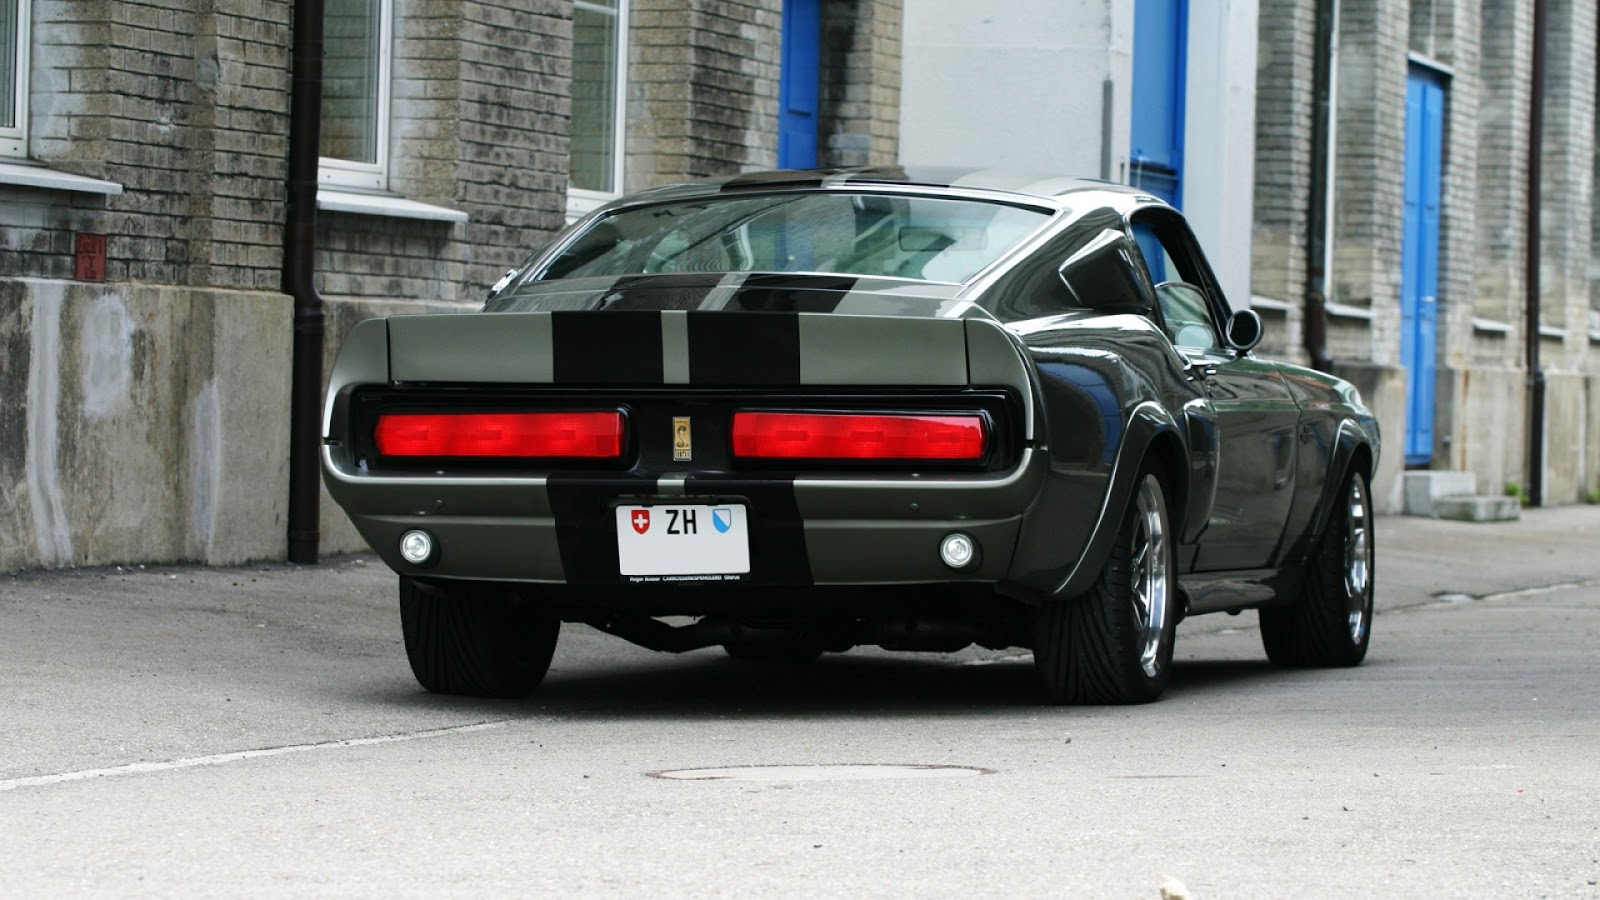 1967-eleanor-ford-mustang-shelby-293903-1920x1080.jpg